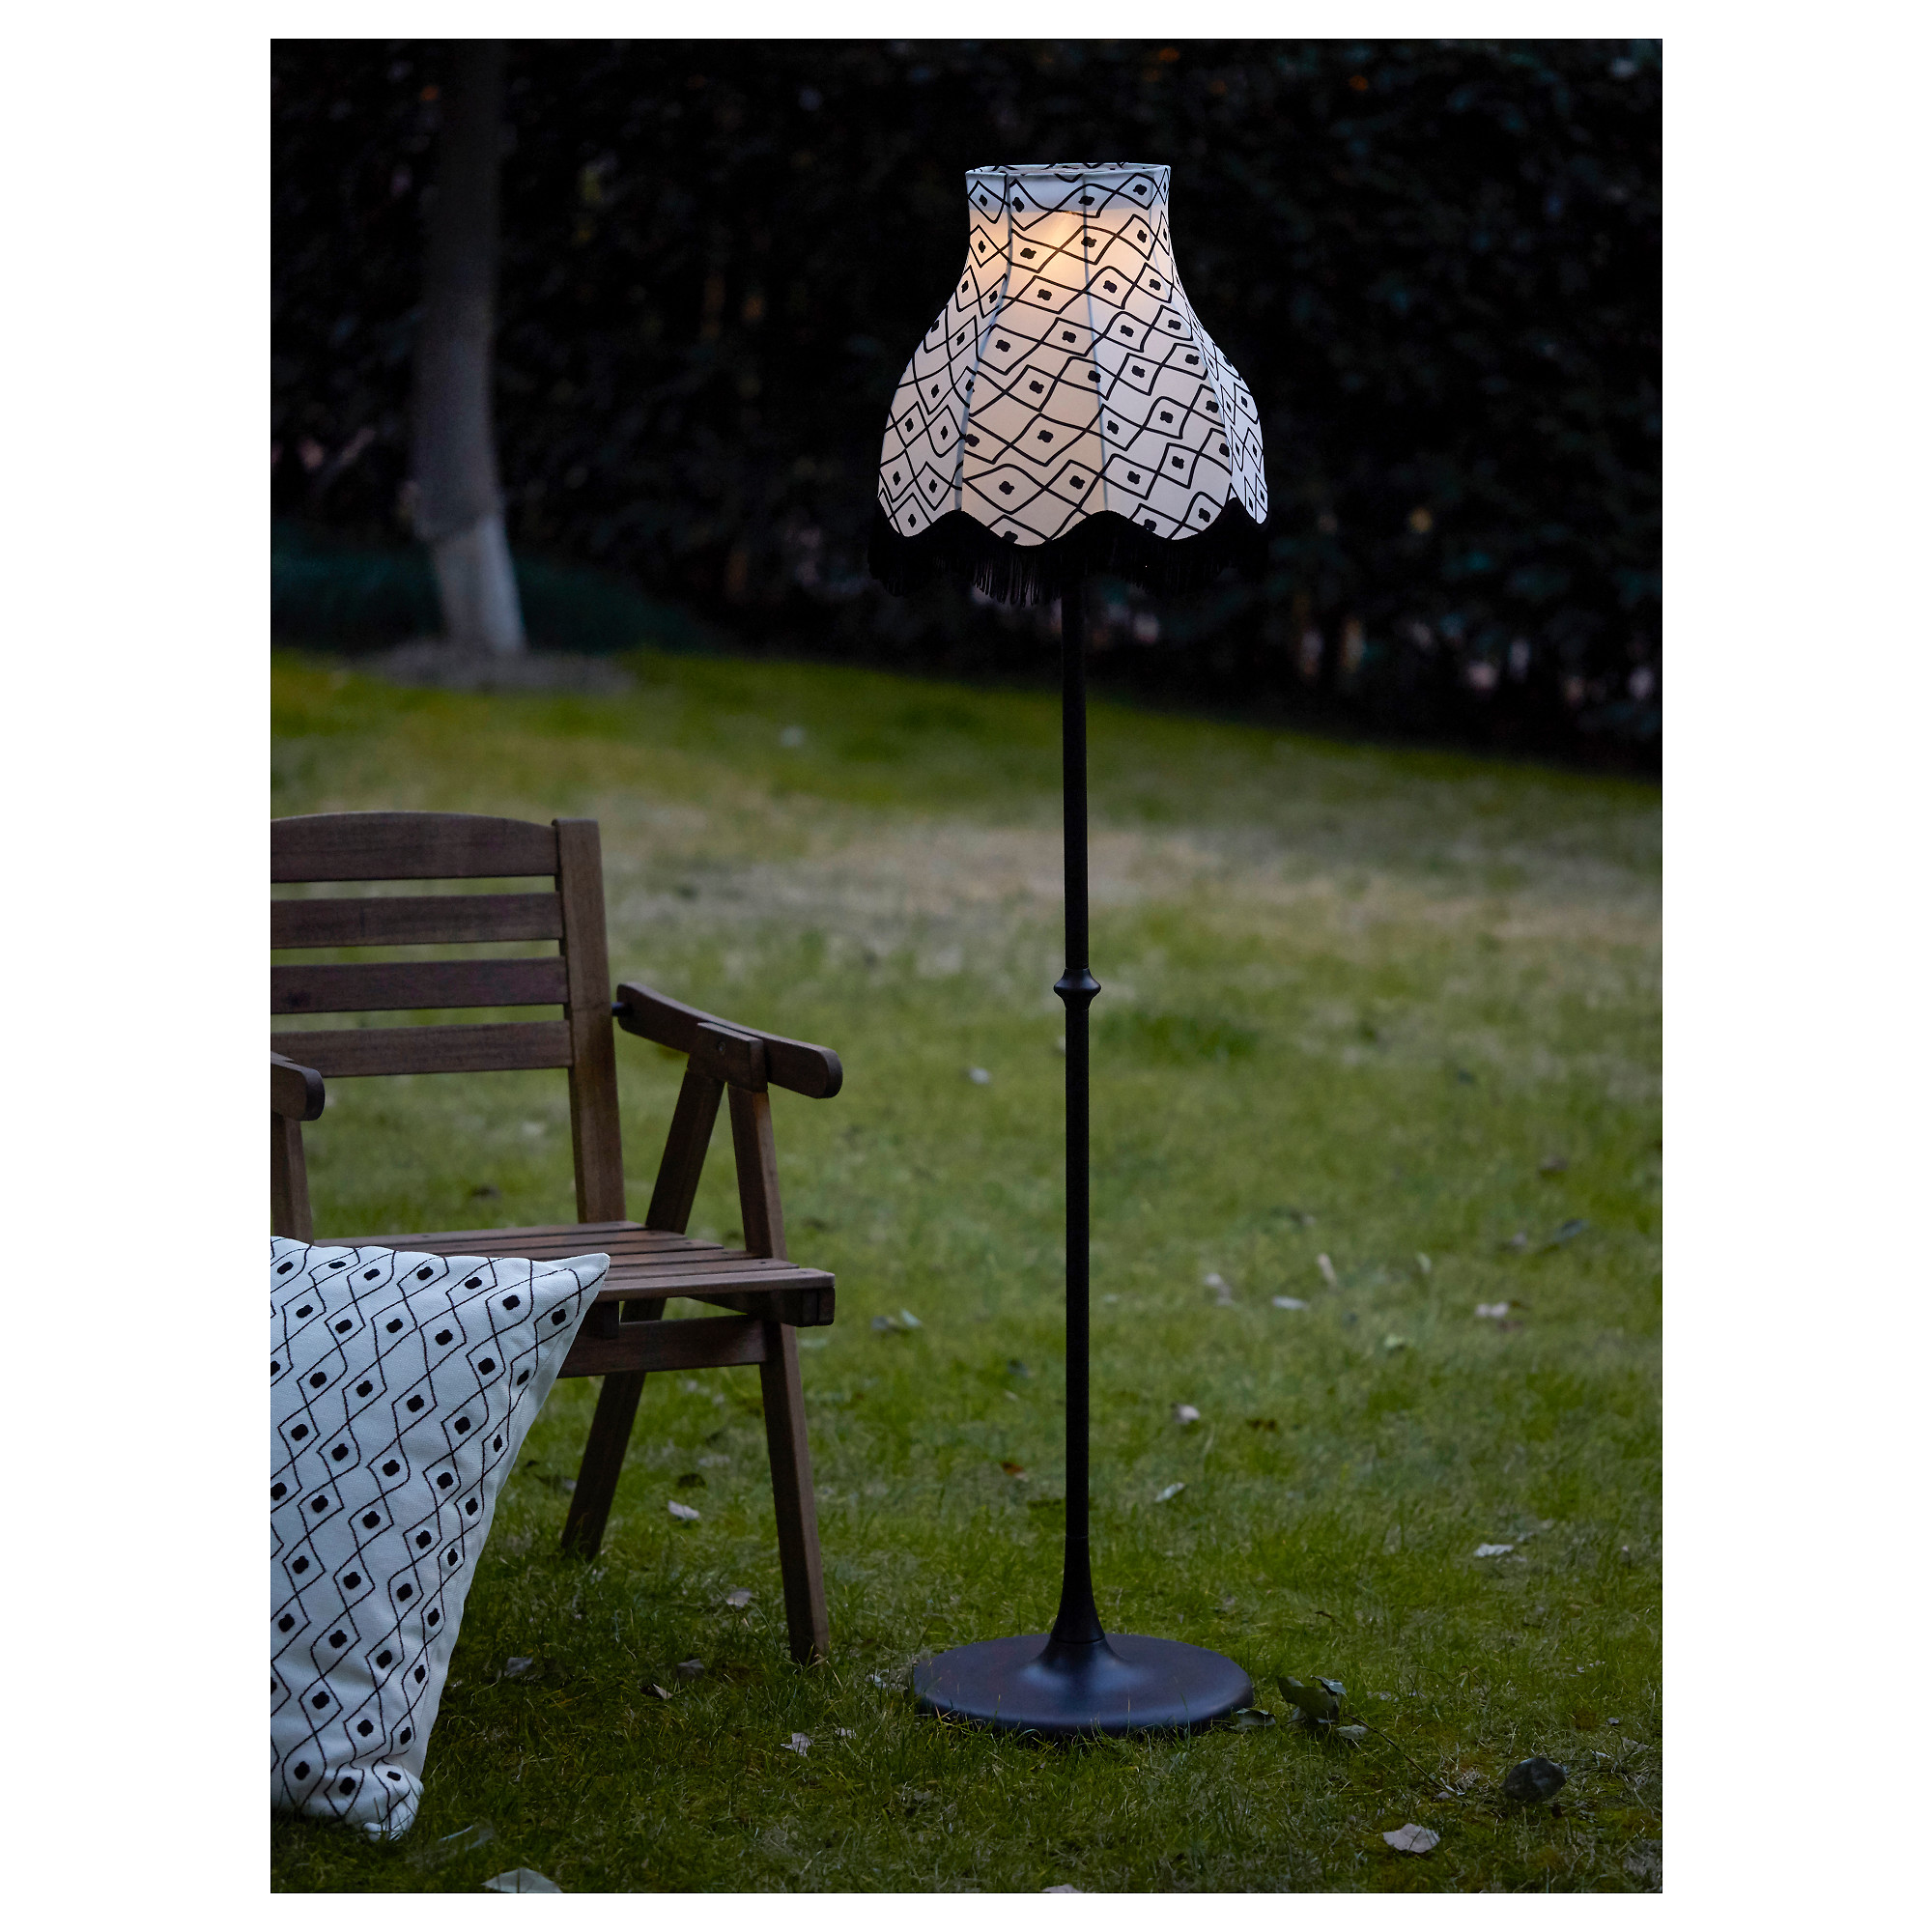 led lampions solar cheap solvinden led floor lamp with led lampions solar simple rund cm. Black Bedroom Furniture Sets. Home Design Ideas